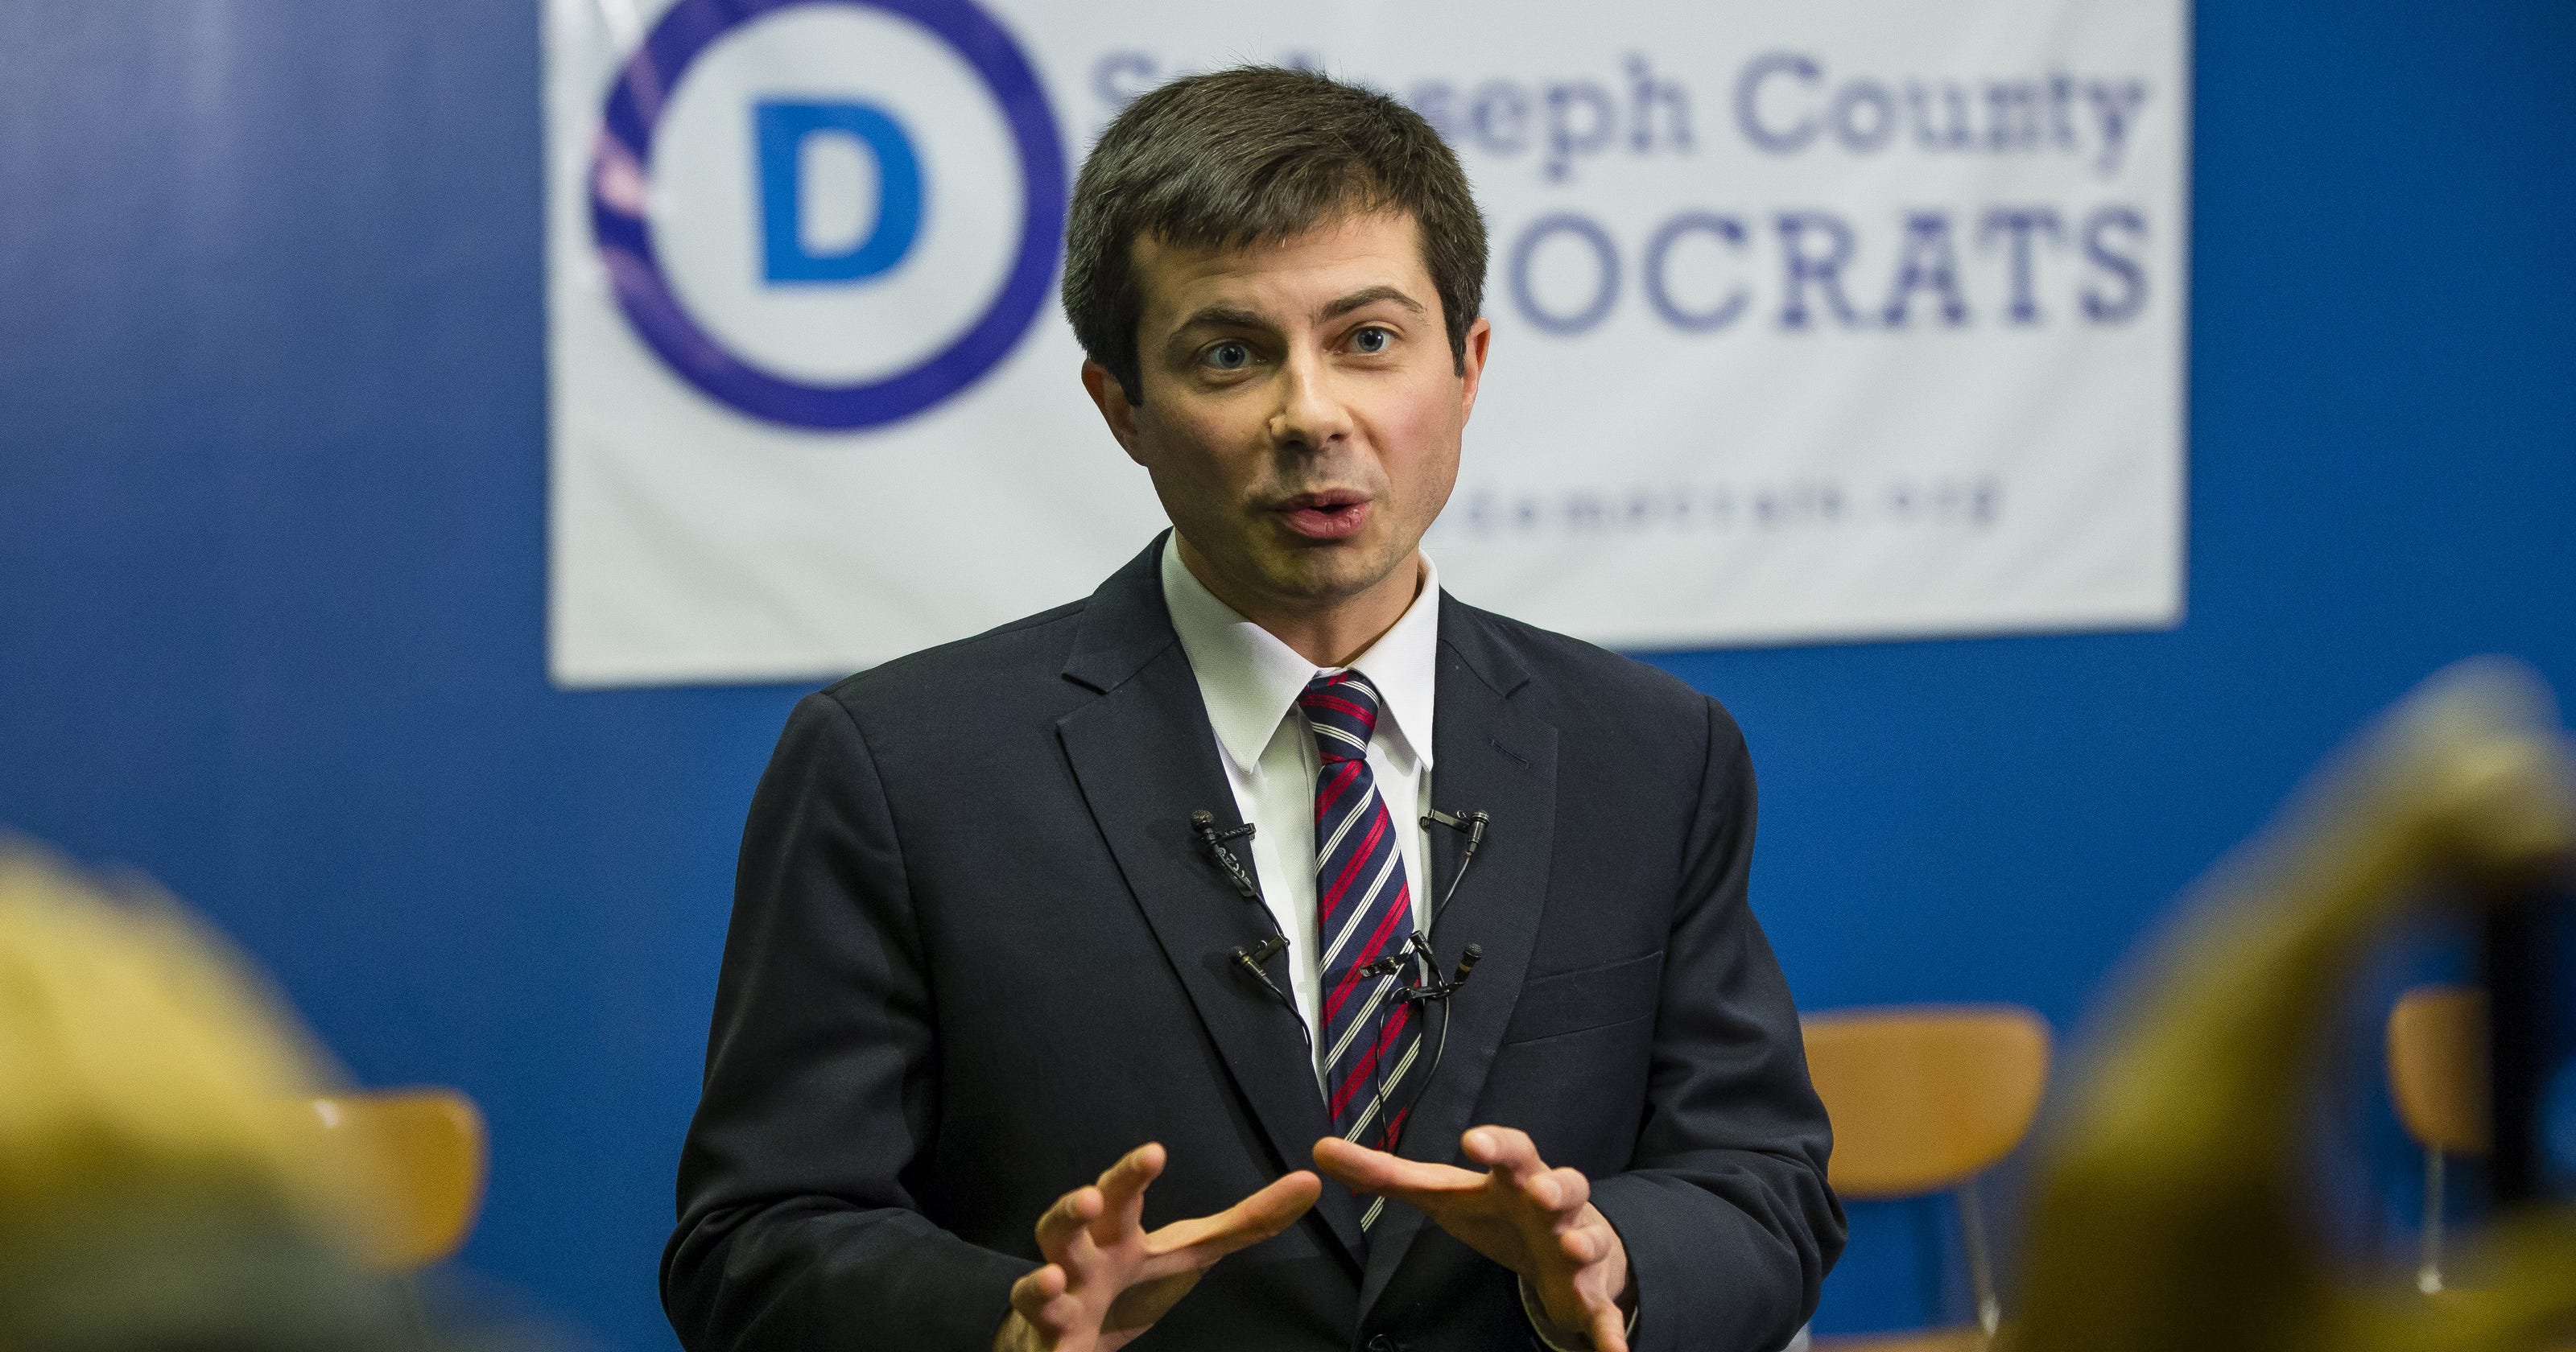 Why Pete Buttigieg is a rising star for Democrats